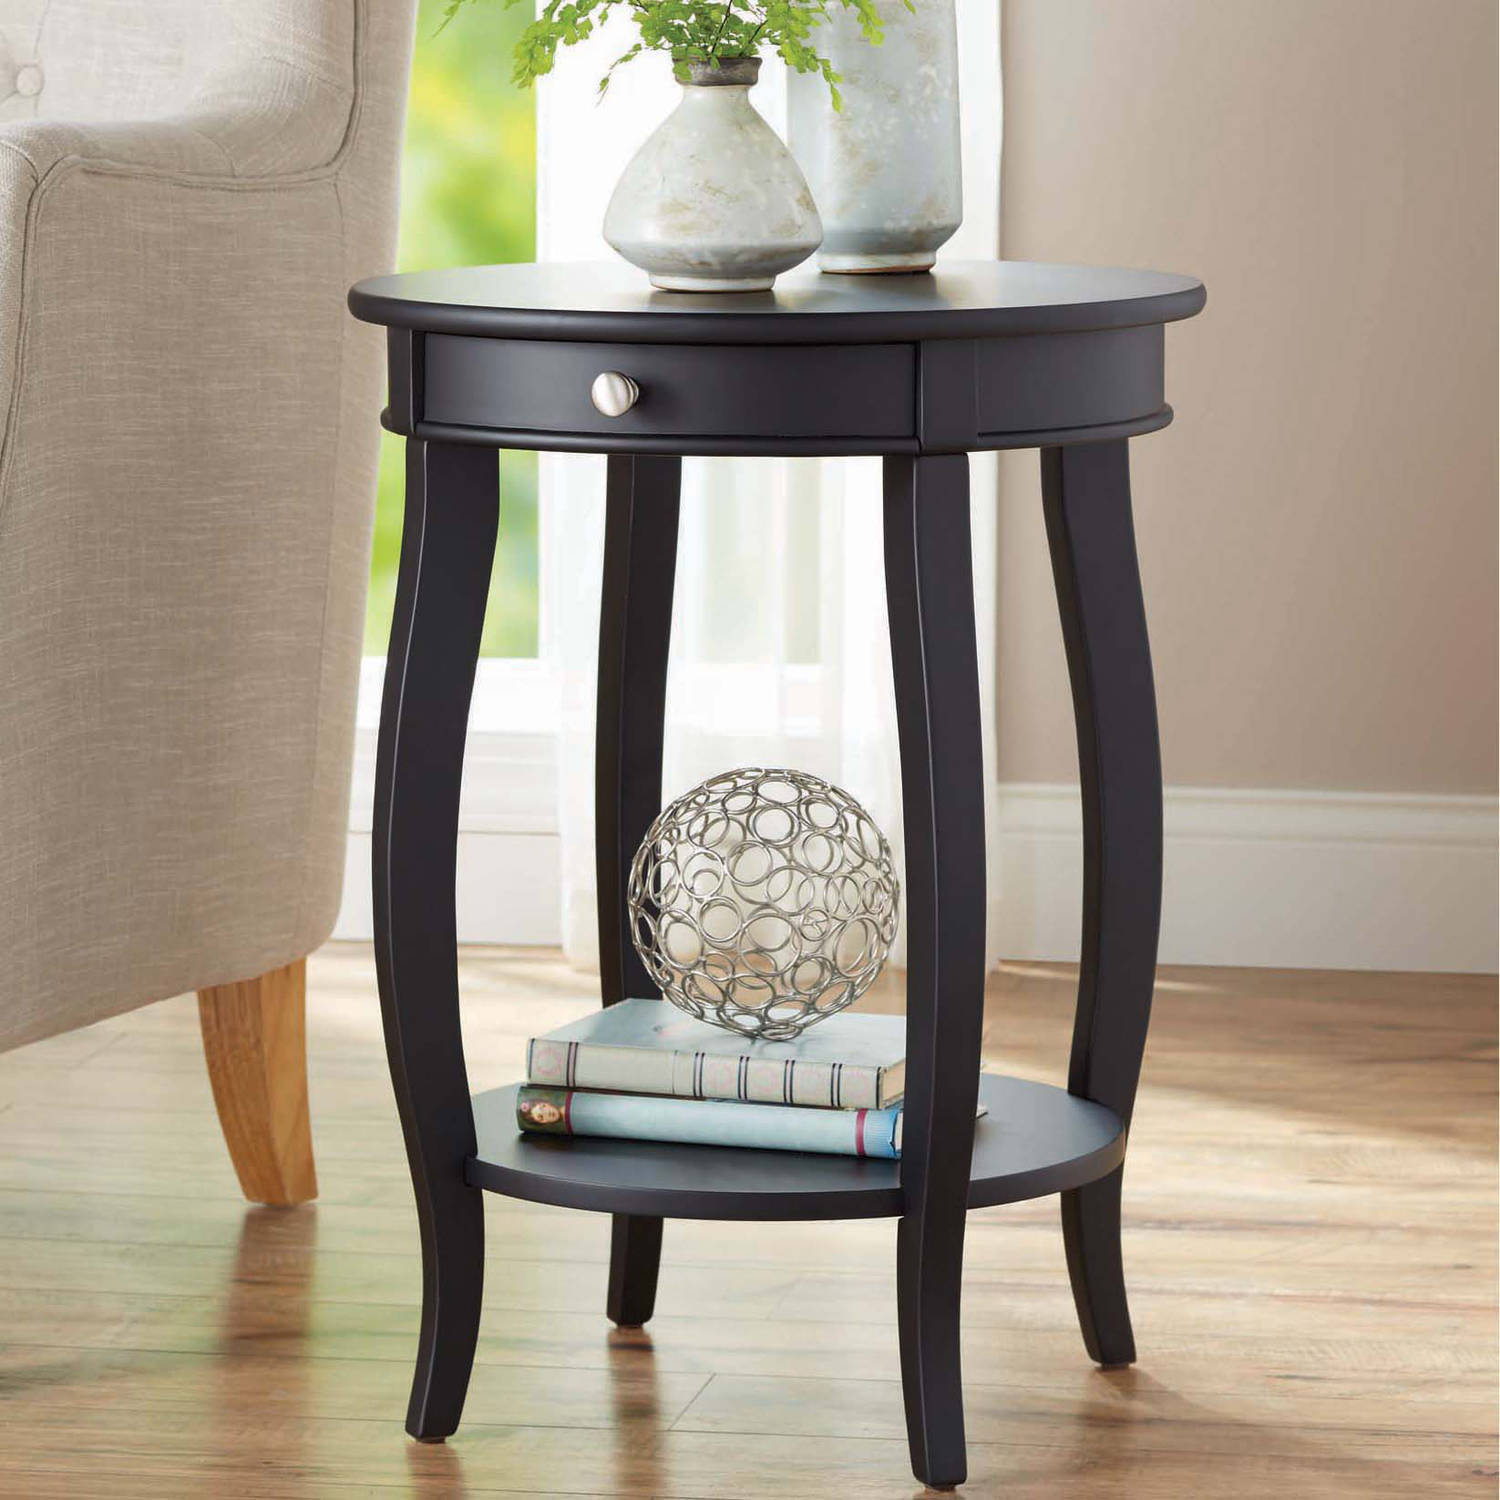 better homes gardens round accent table with drawer multiple small grey colors extra side outdoor battery lamps acrylic waterfall console best home office desk black dining chairs